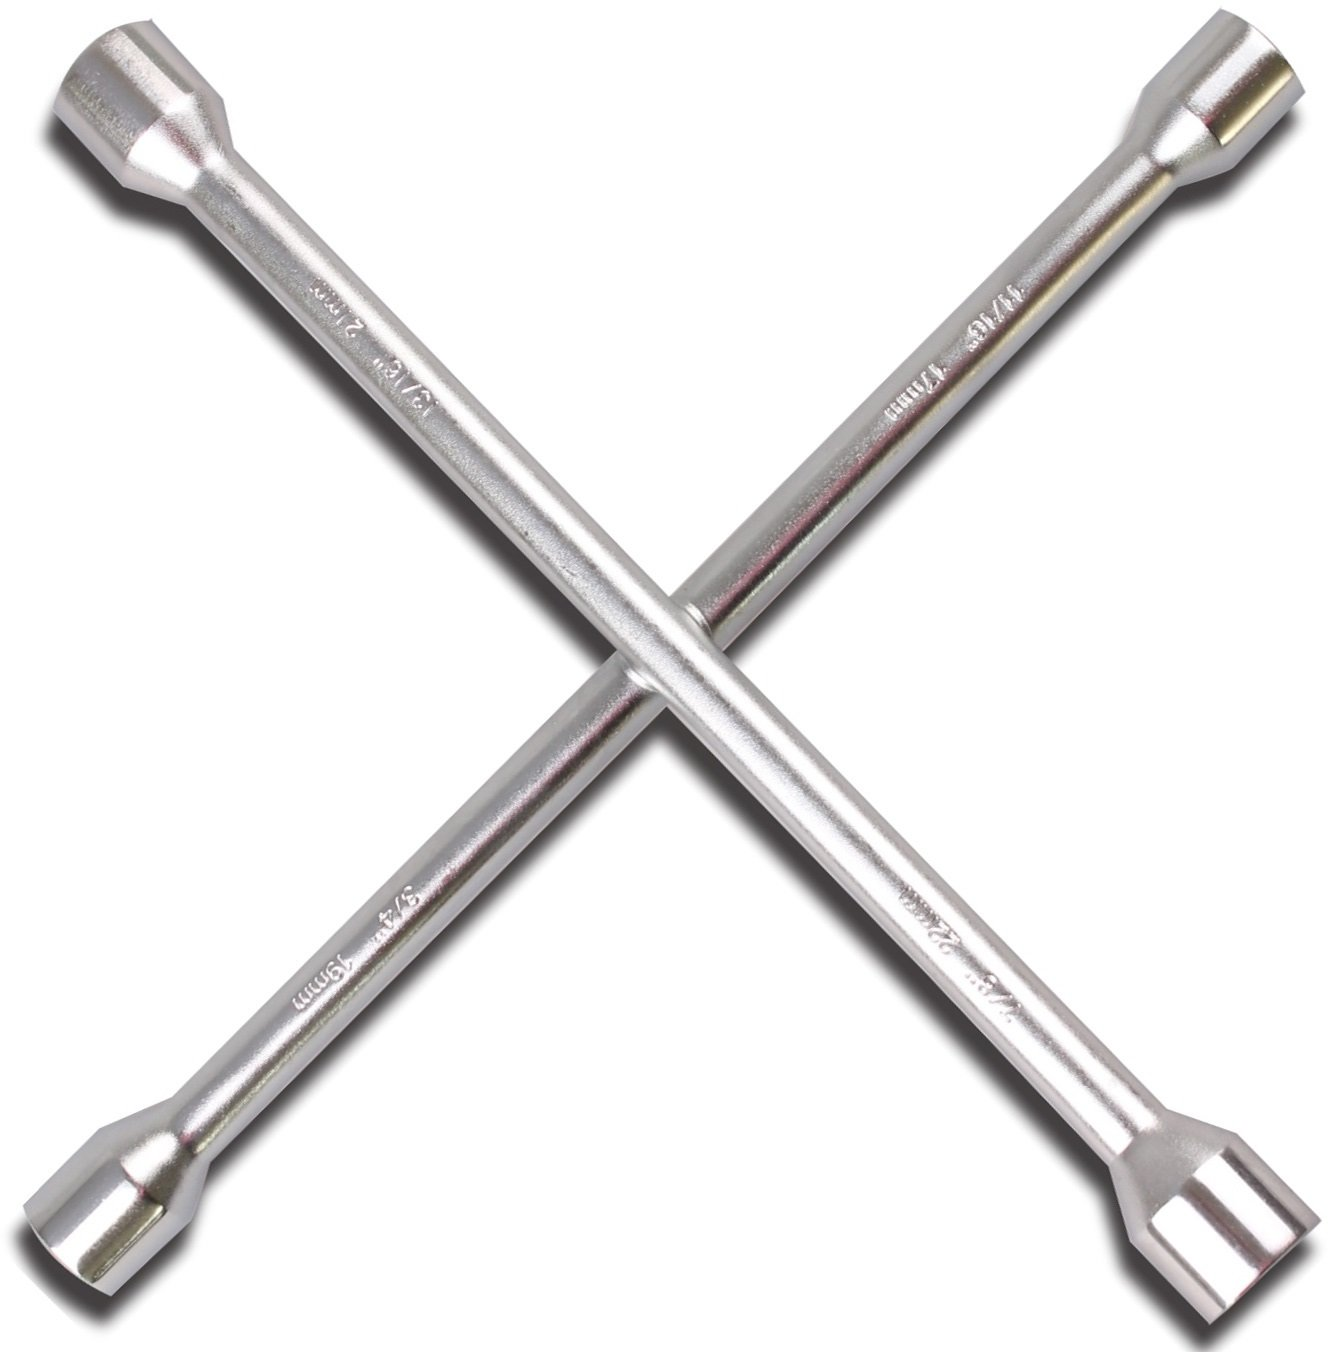 CARTMAN 14 Heavy Duty Universal Lug Wrench 4-Way Cross Wrench